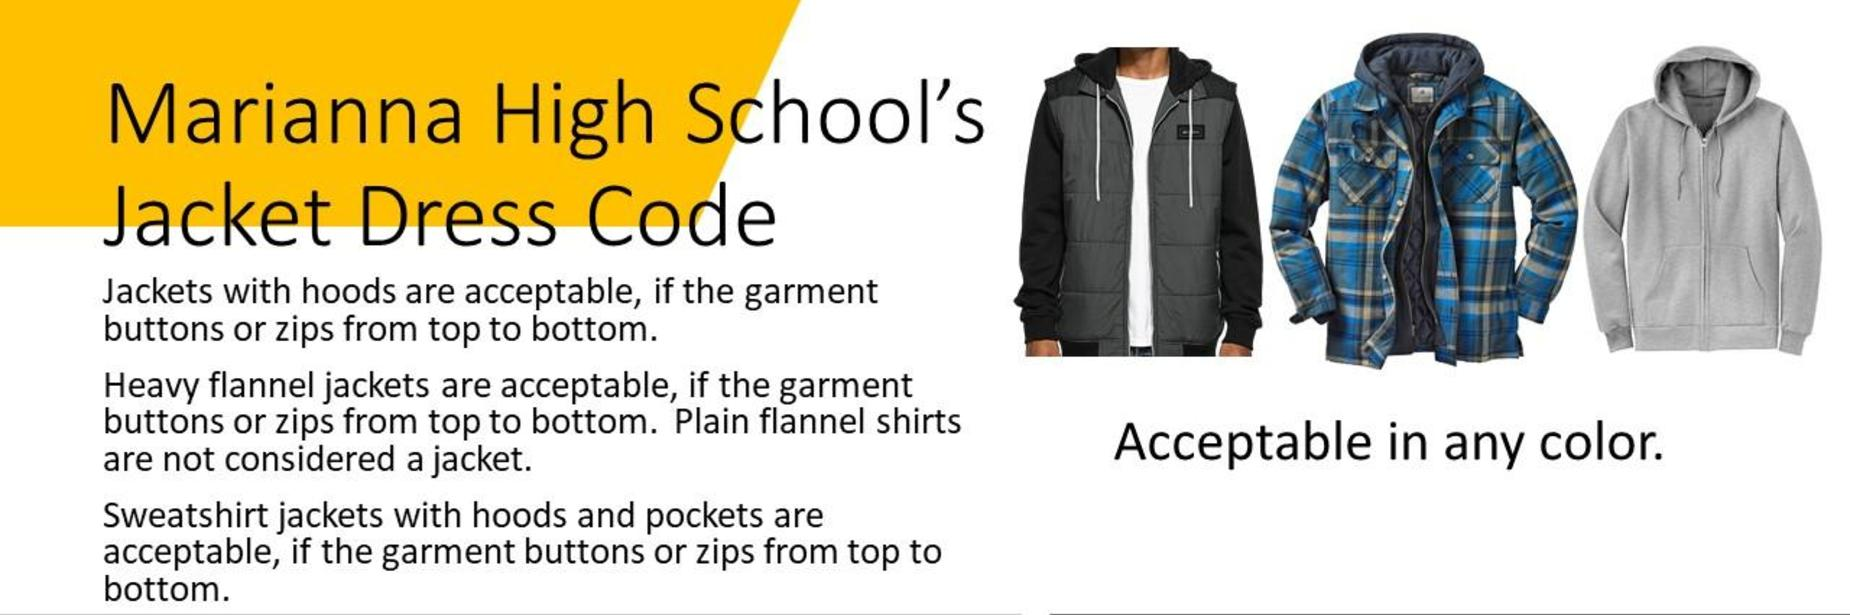 Marianna High School's Jacket Dress Code: Jackets with hoods are acceptable, if the garment buttons or zips from top to bottom. Heavy flannel jackets are acceptable, if the garment buttons or zips from top to bottom.  Plain flannel shirts are not considered a jacket. Sweatshirt jackets with hoods and pockets are acceptable, if the garment buttons or zips from top to bottom.  Jackets are acceptable in any color.